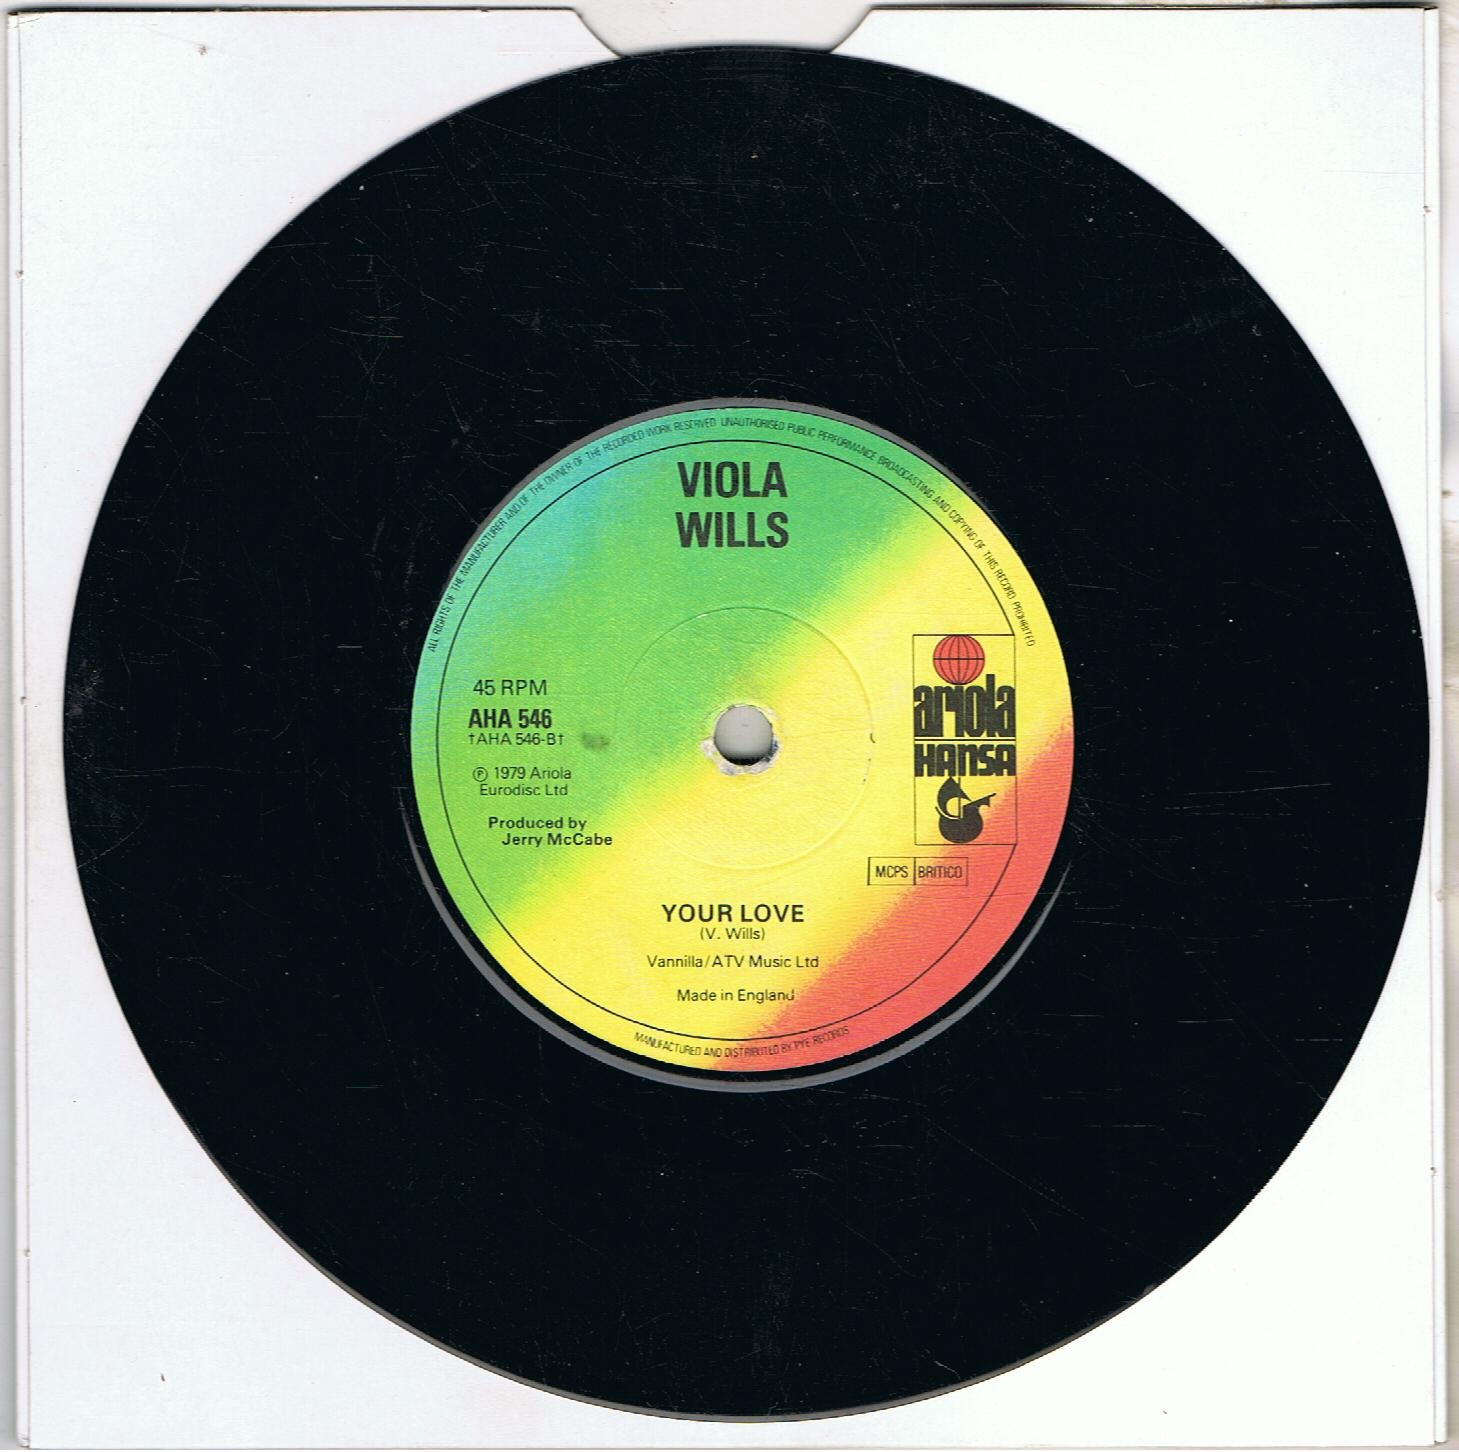 Viola Wills - Gonna Get Along Without You Now / Your Love - Ariola ...